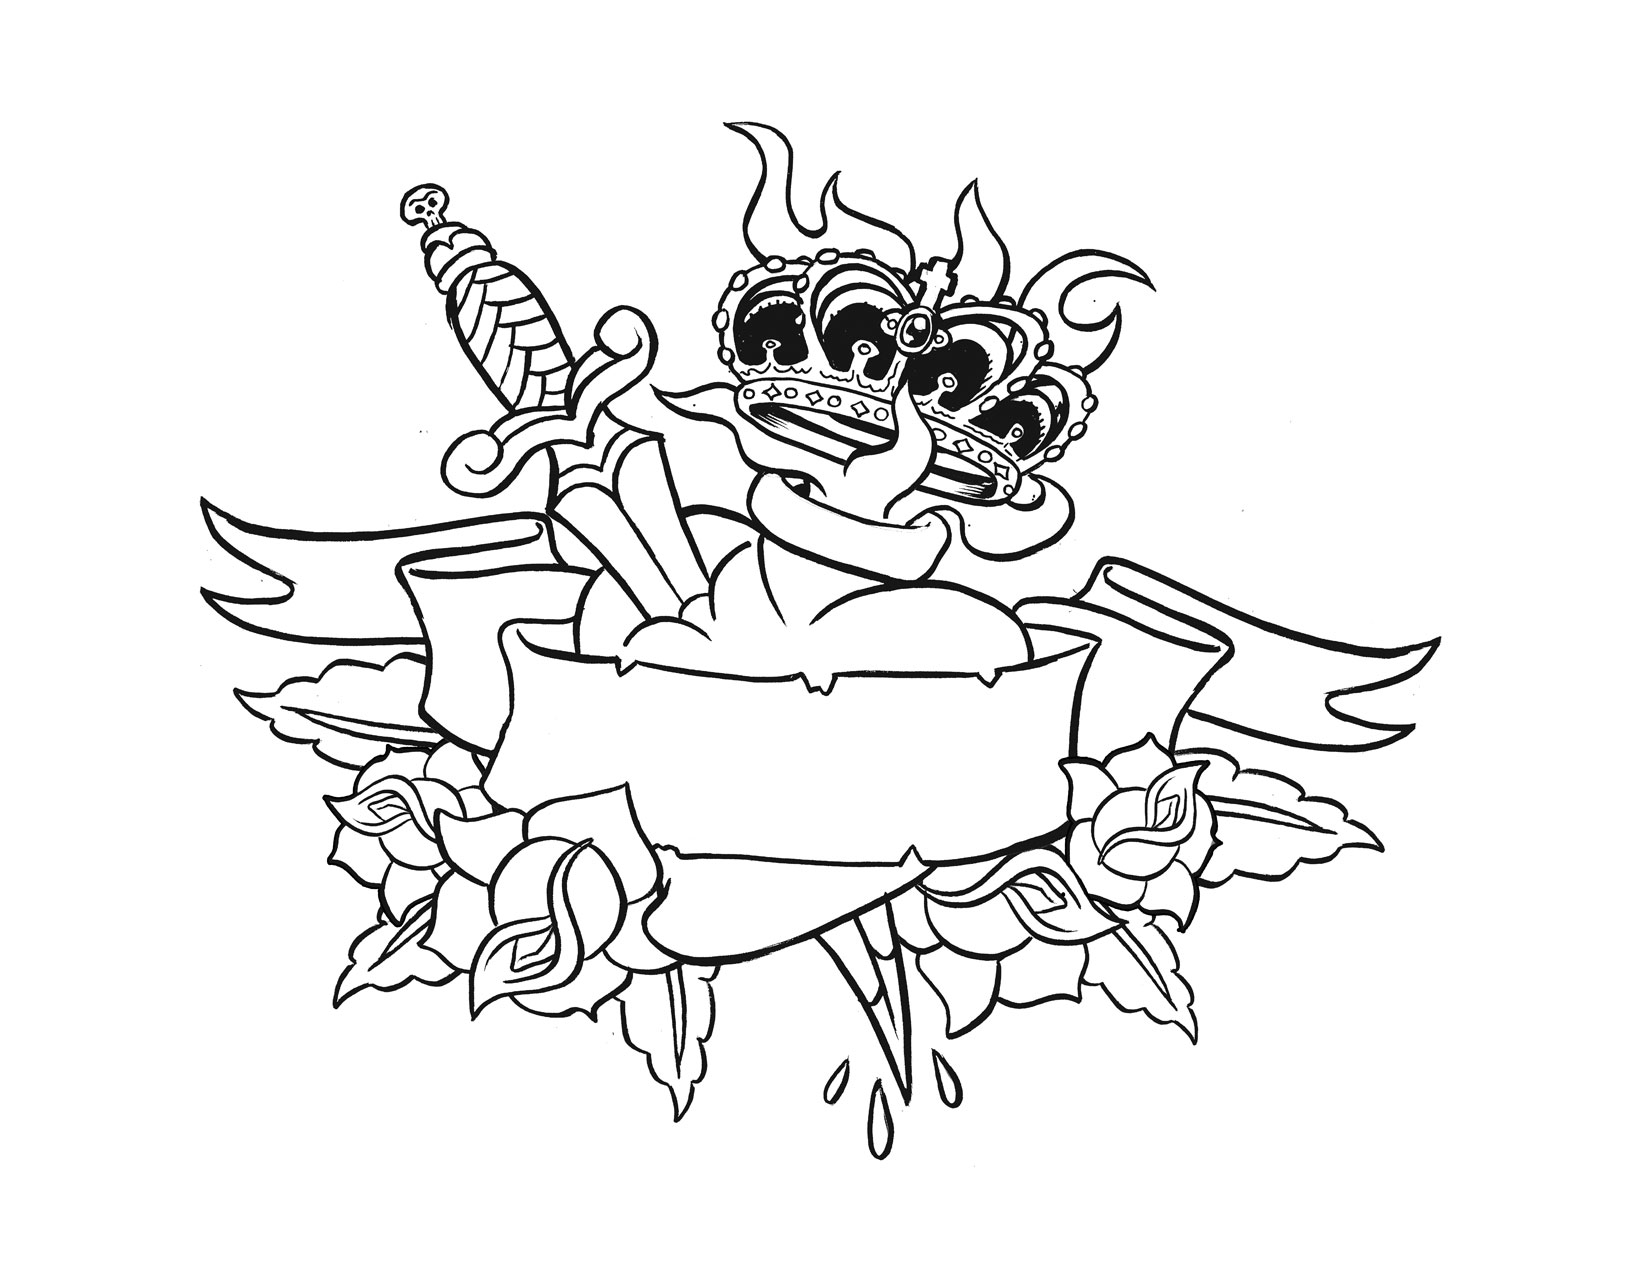 Graffiti Coloring Pages for Teens and Adults - Best ...